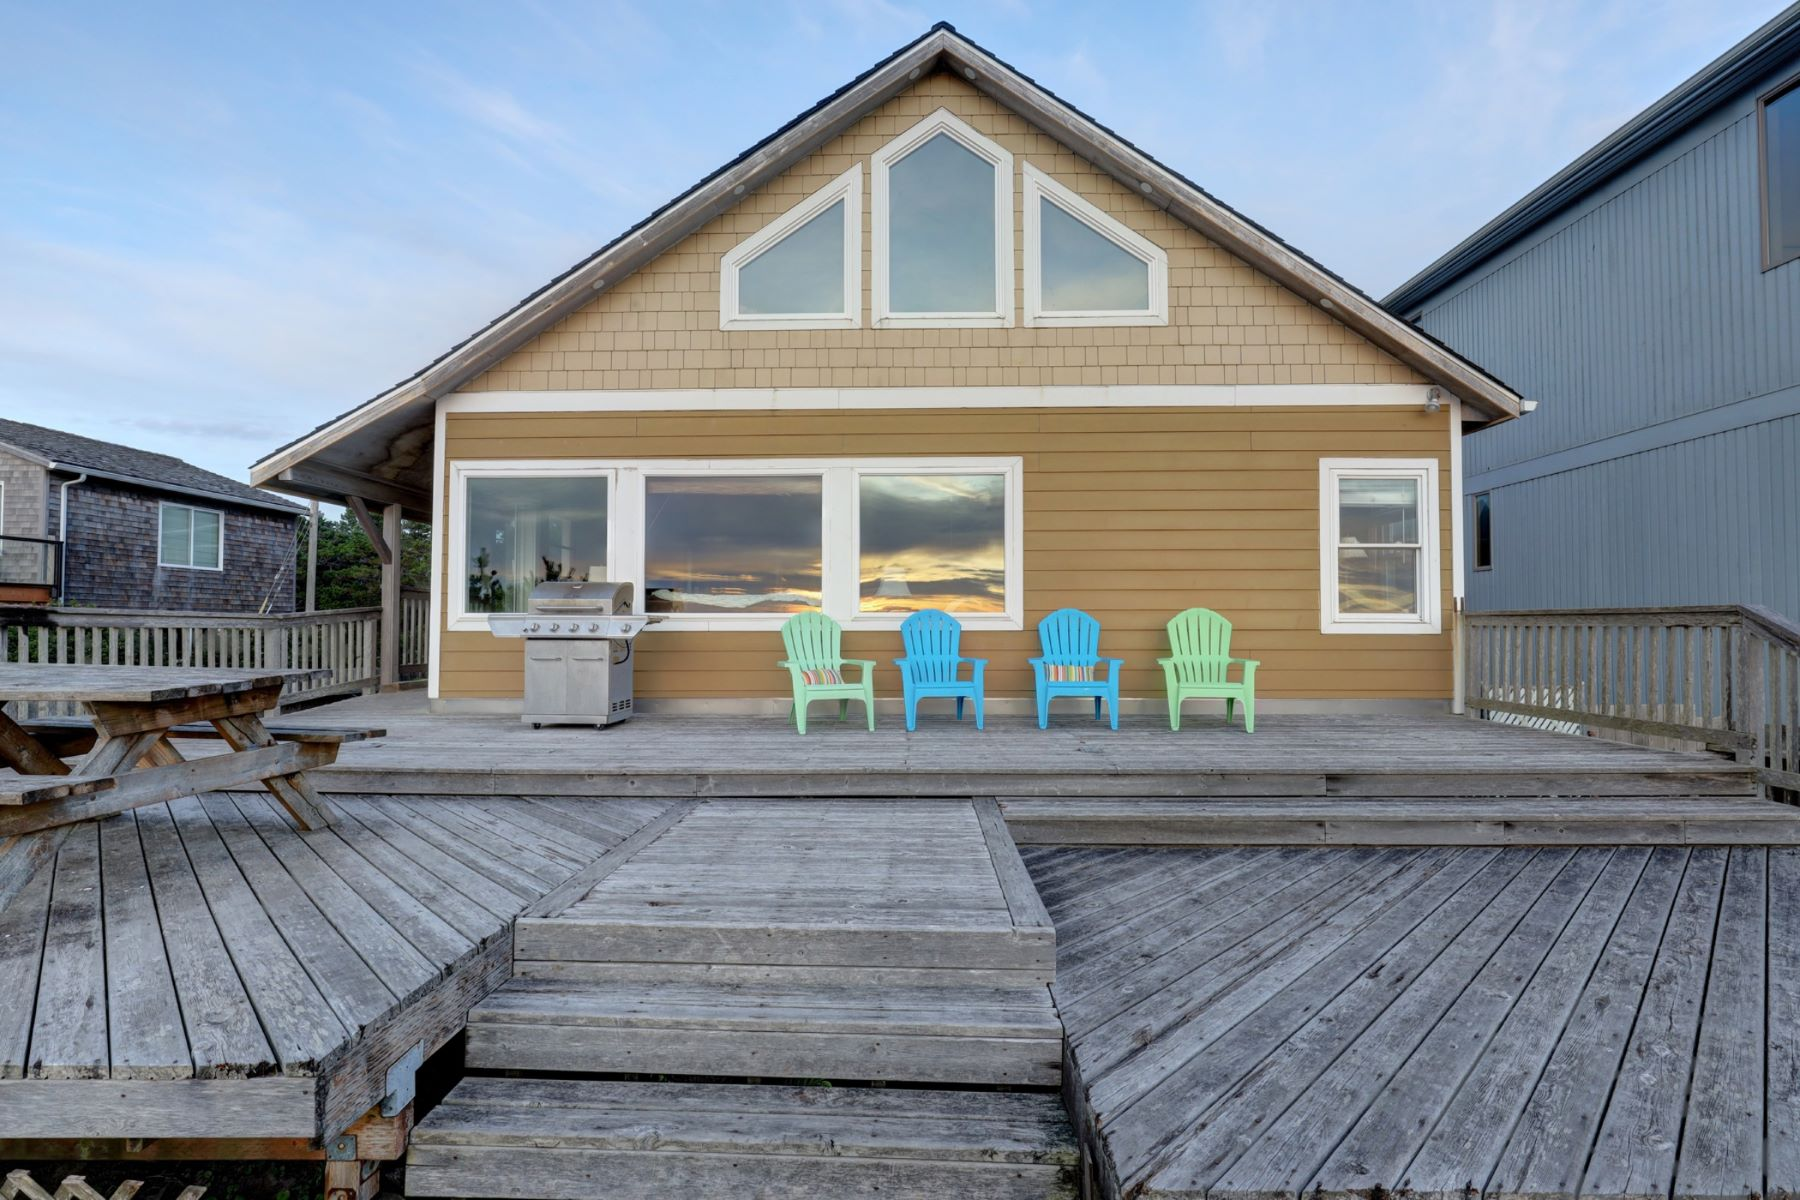 Single Family Homes for Active at Will You Go To The Prom With Me? 1209 N Prom Seaside, Oregon 97138 United States